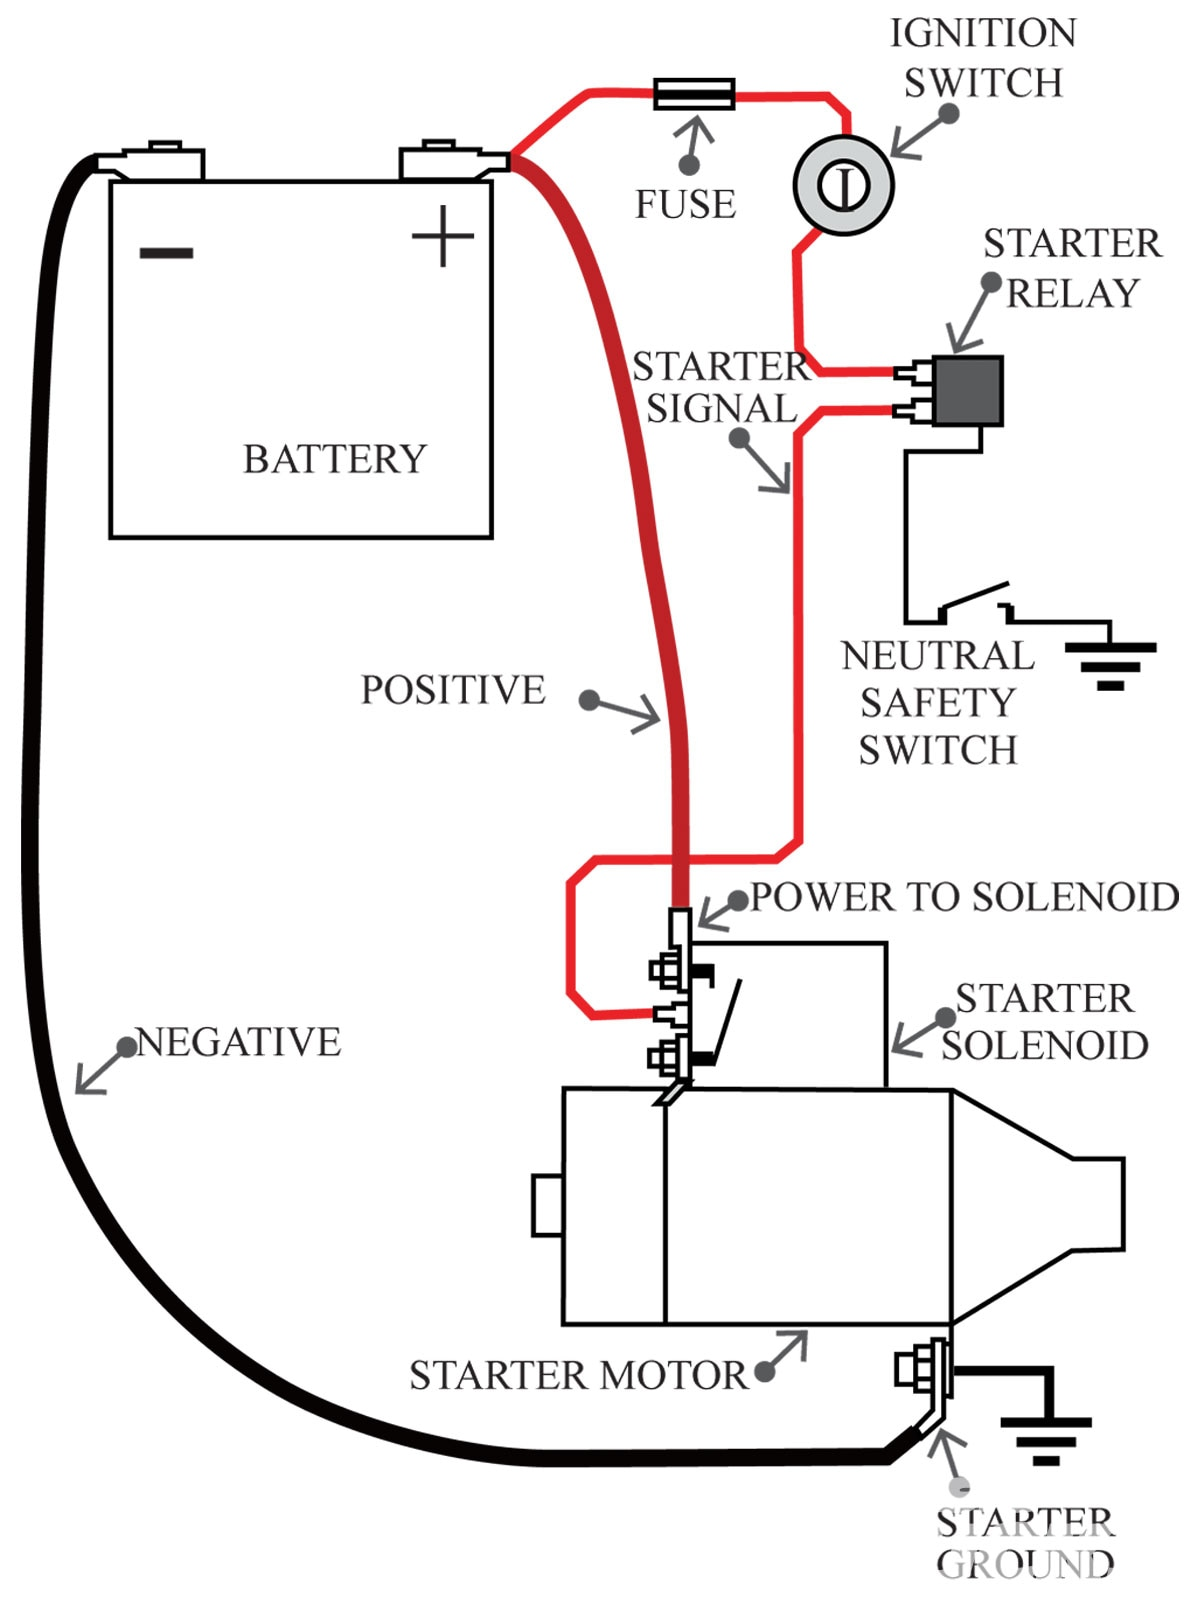 Electric Motor Switch Wiring Diagram Diagrams Wiring